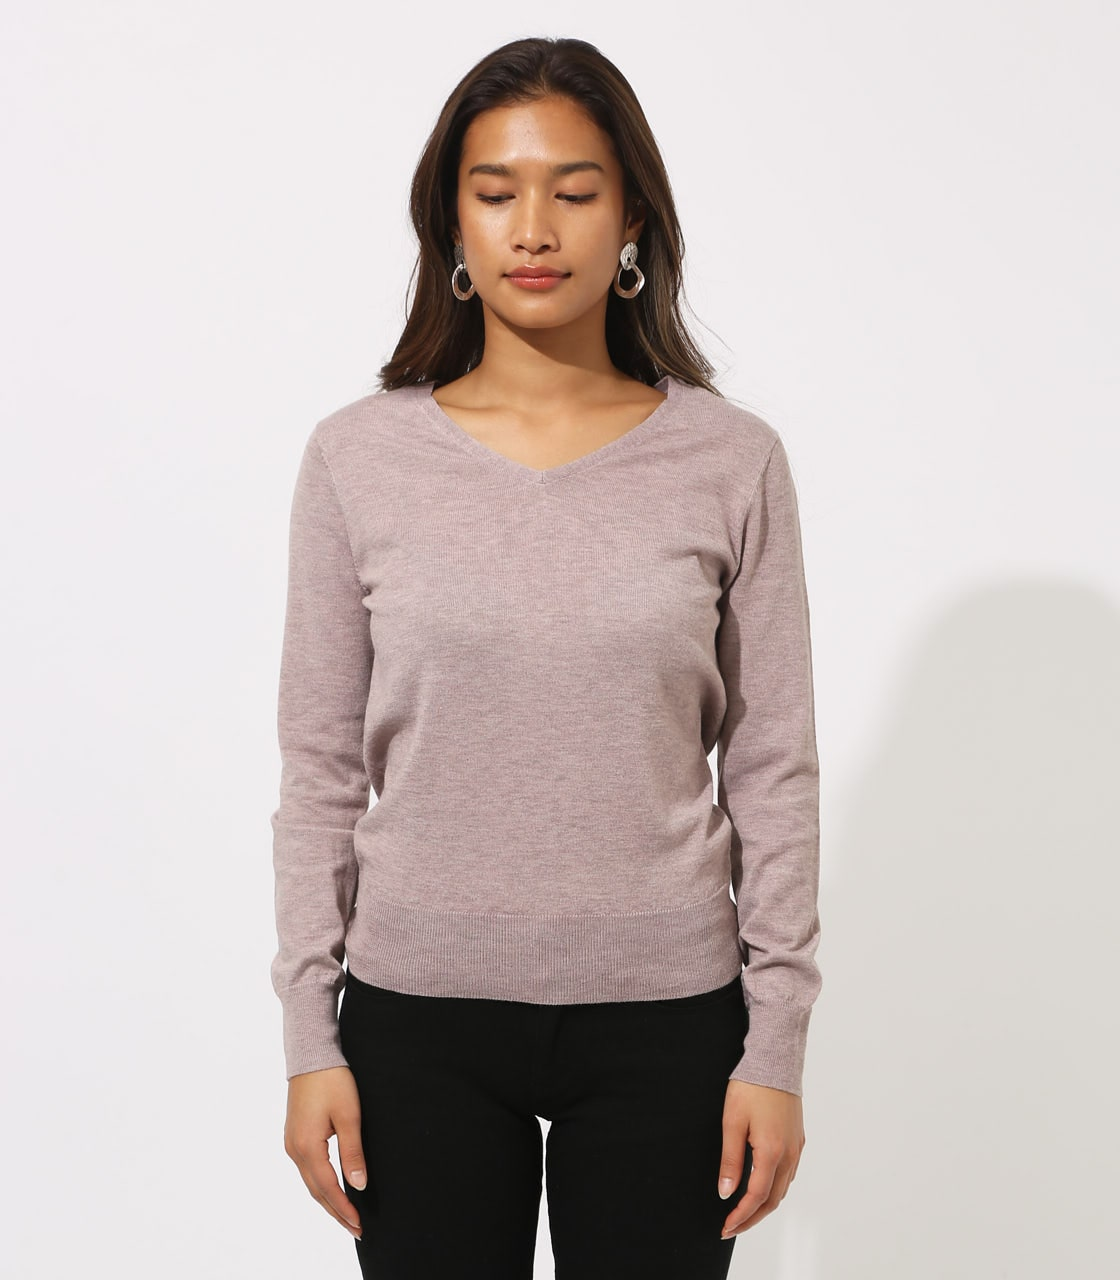 BASIC VNECK KNIT TOPS 詳細画像 BEG 5